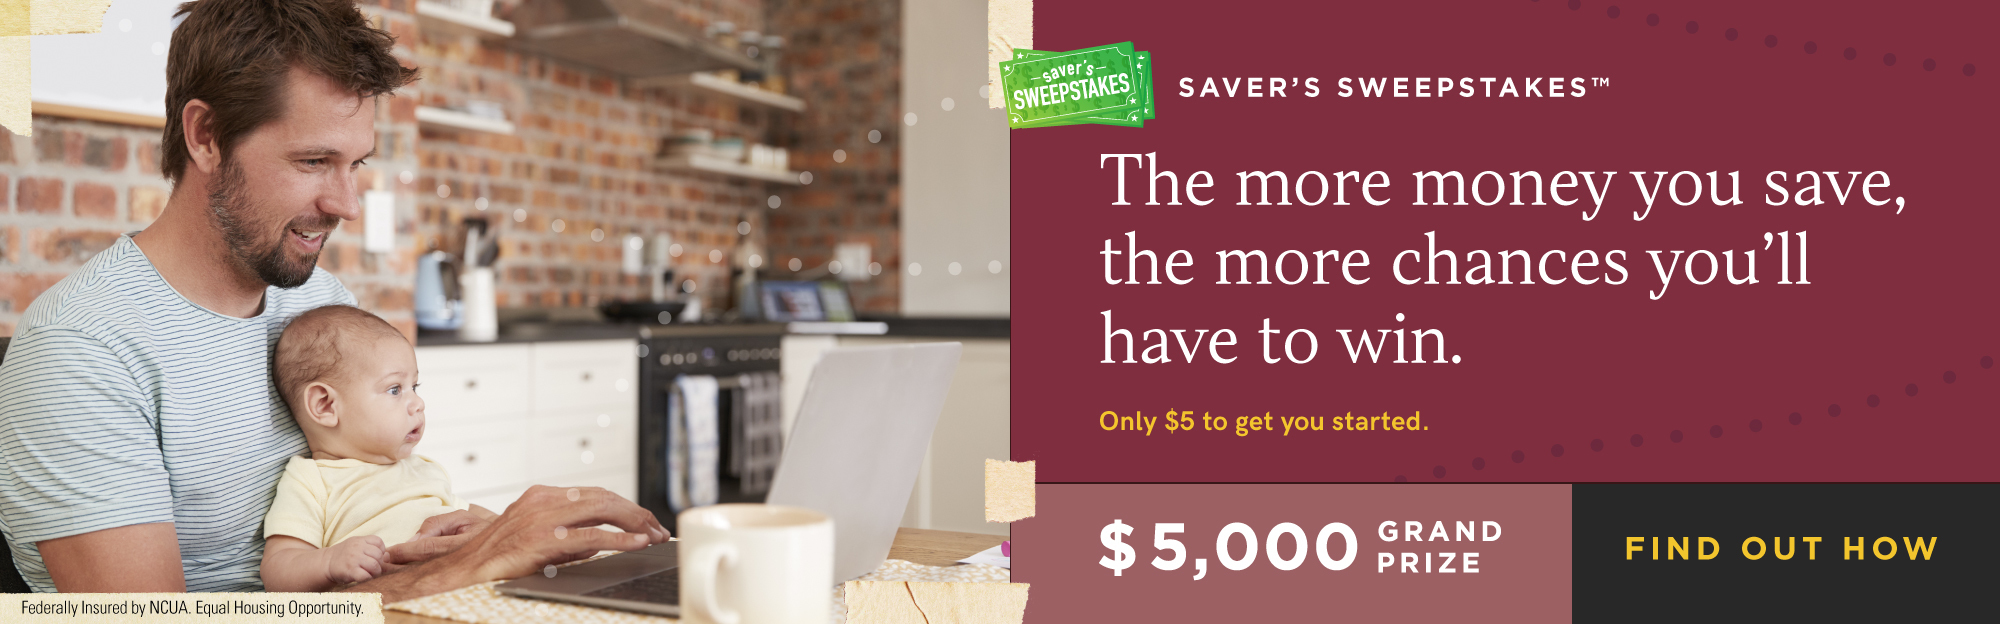 Savers Sweepstakes